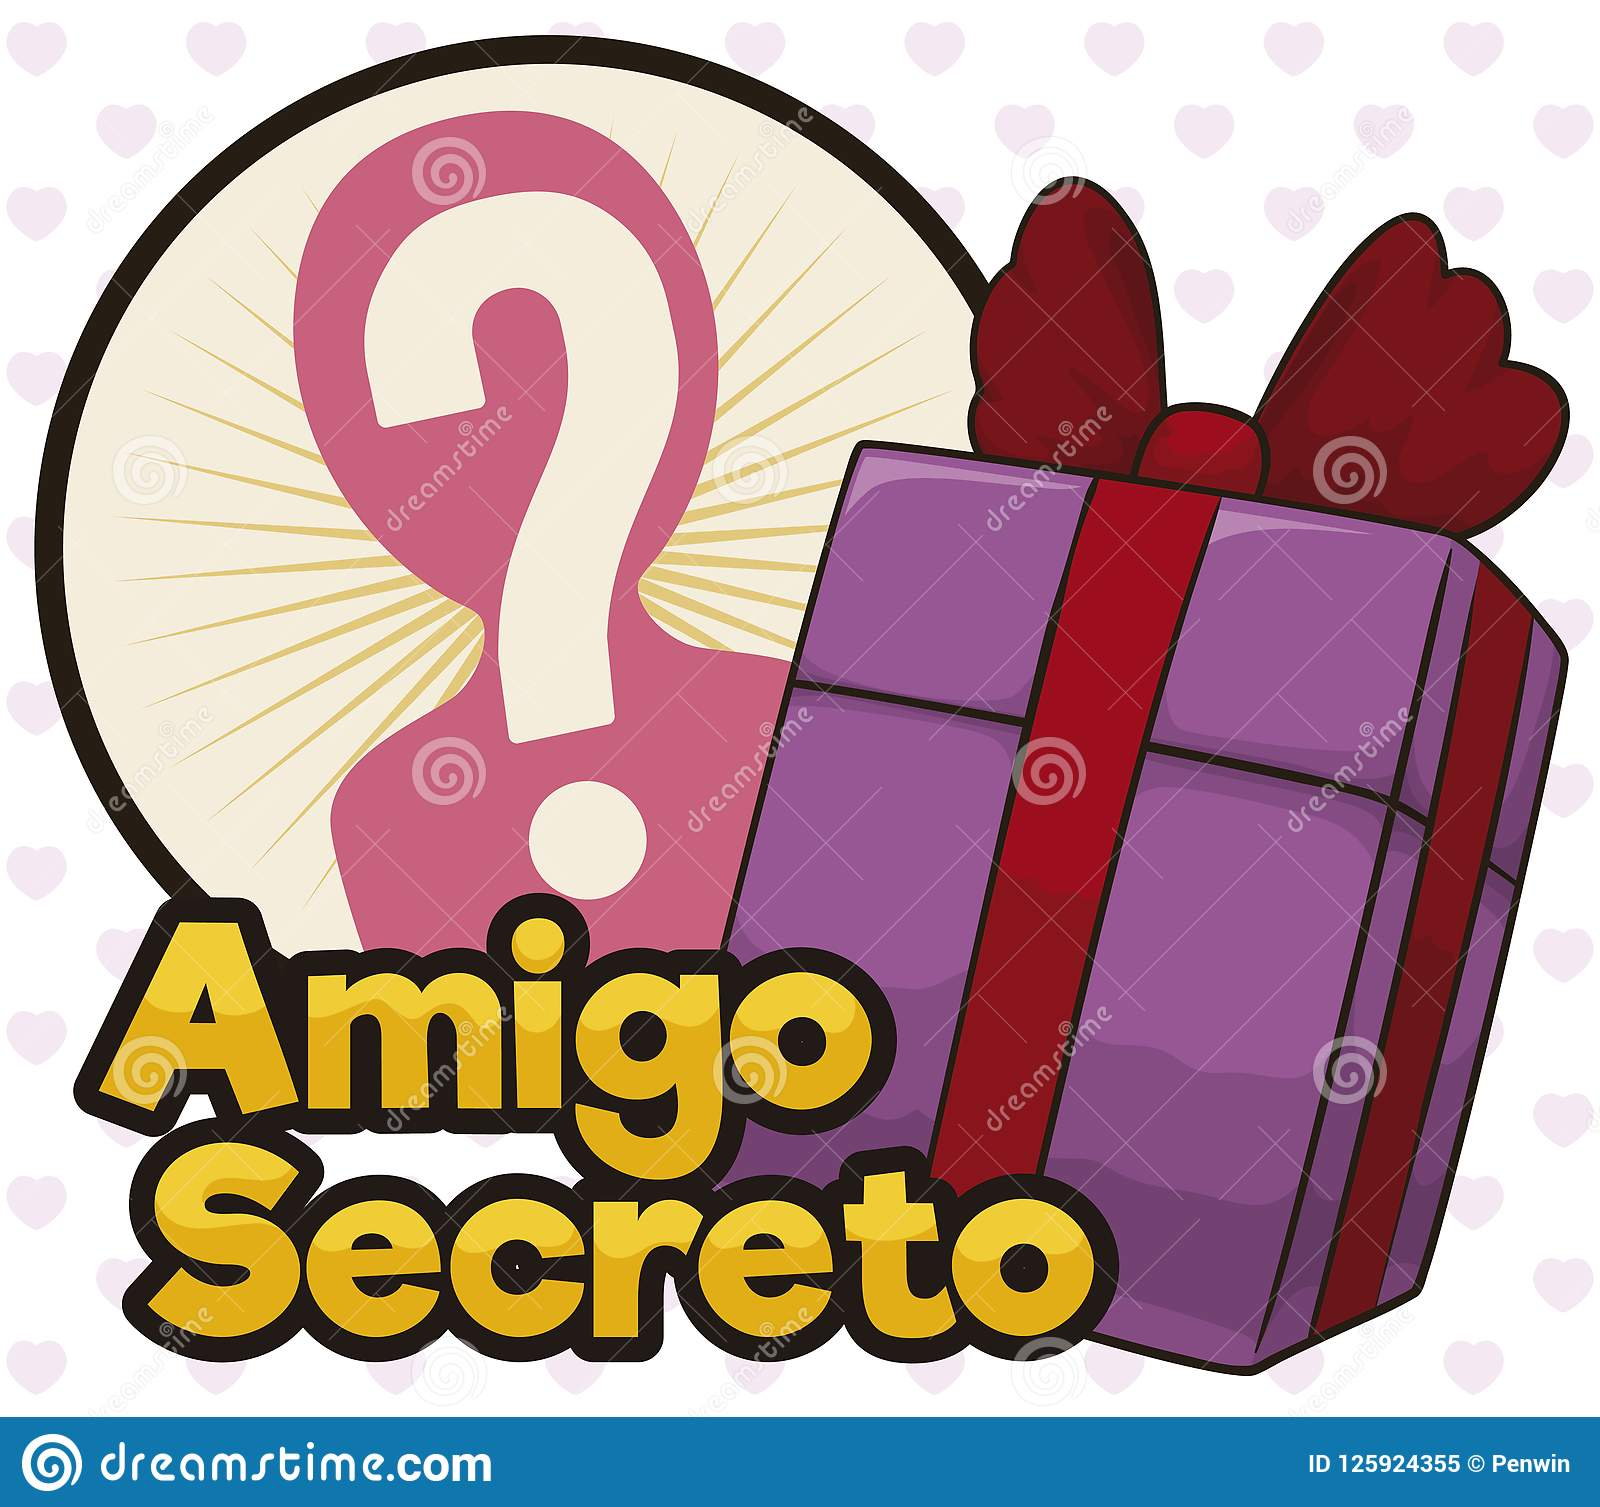 Gift in a Box to Play the Secret Friend Game, Vector Illustration